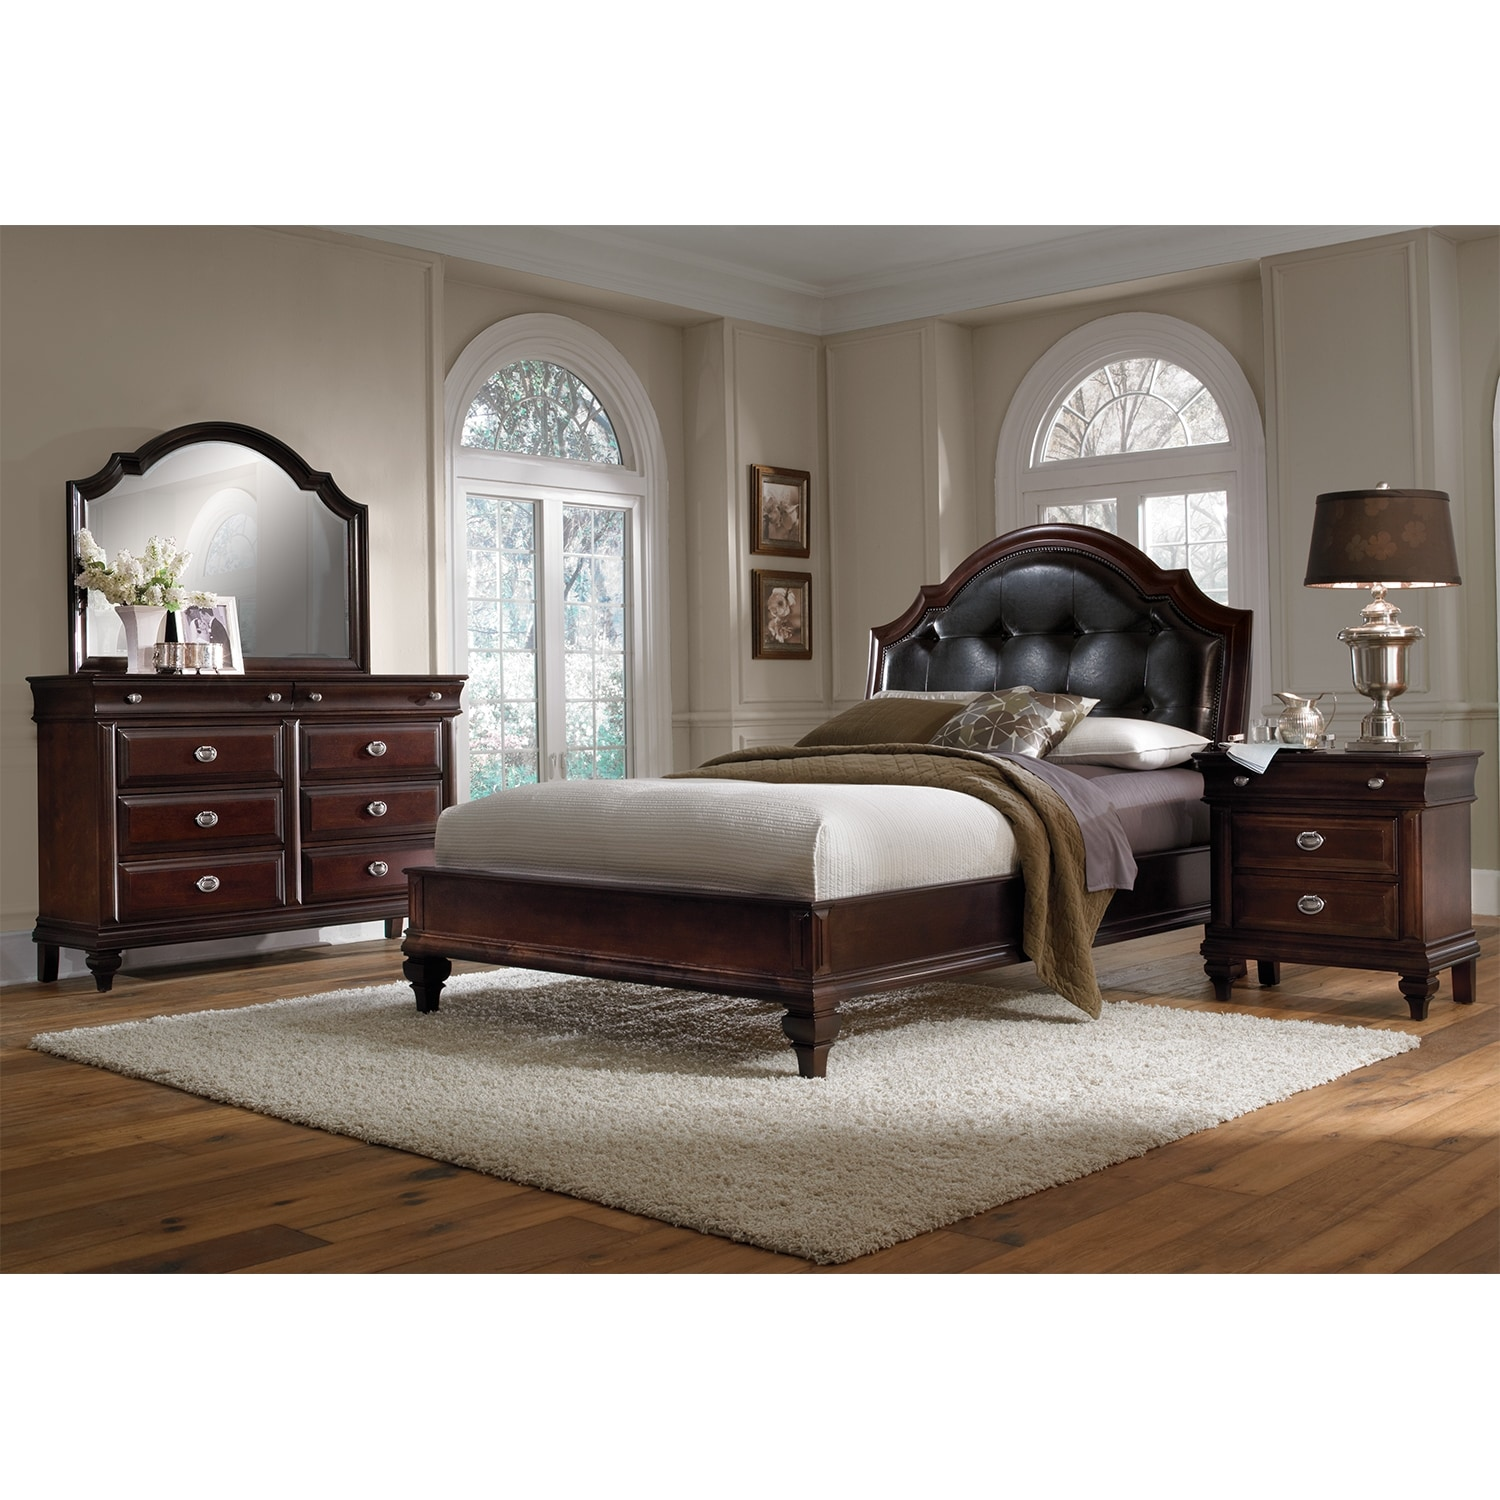 Bedroom Furniture   Manhattan 6 Piece Queen Upholstered Bedroom Set   Cherry